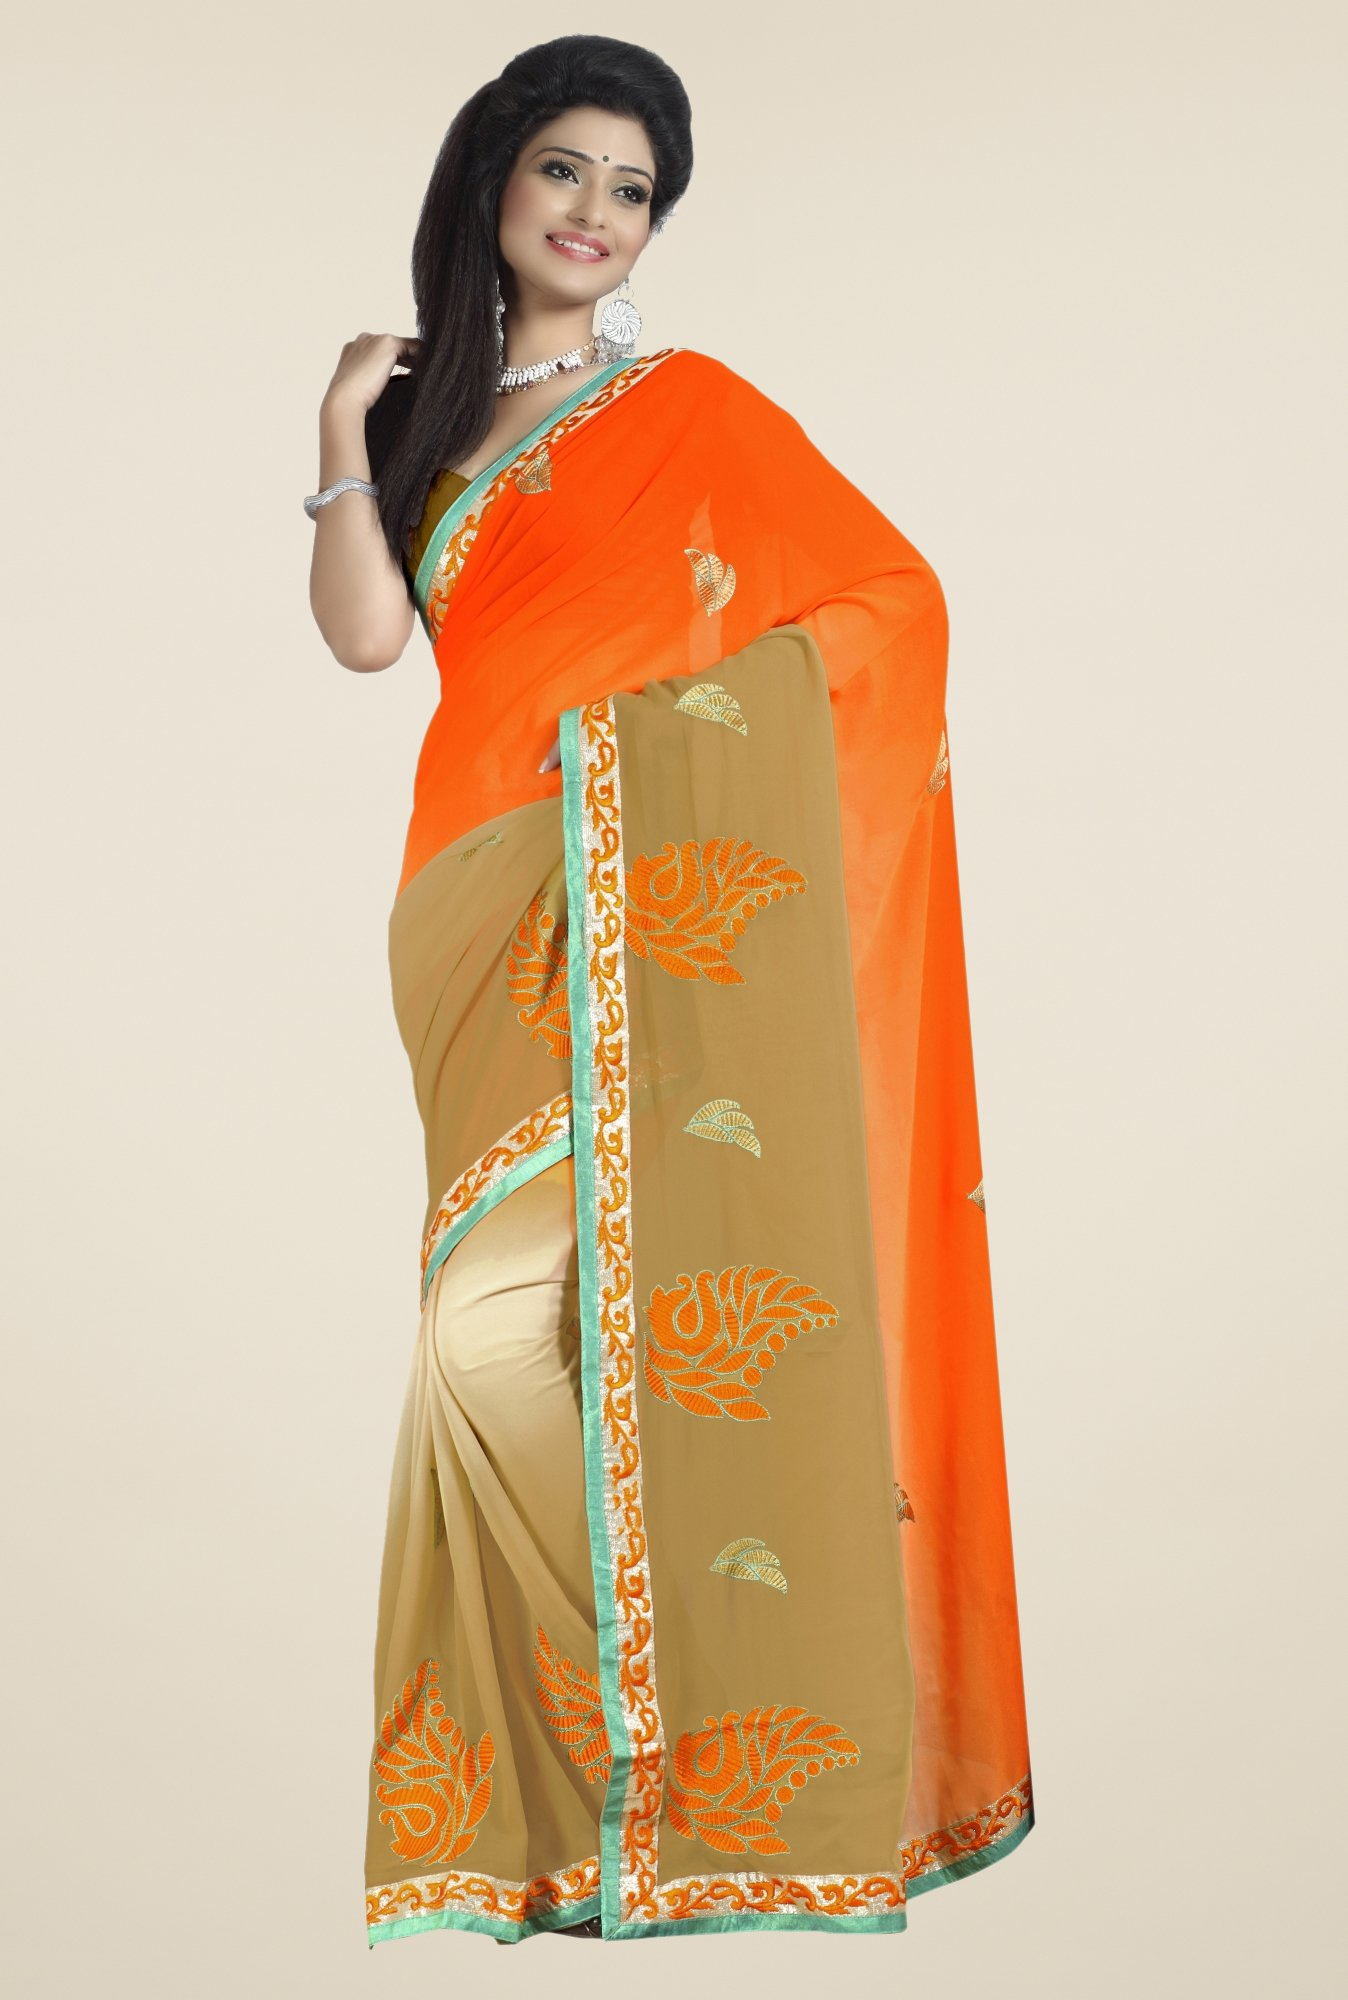 Triveni Beige & Orange Embroidered Faux Georgette Saree